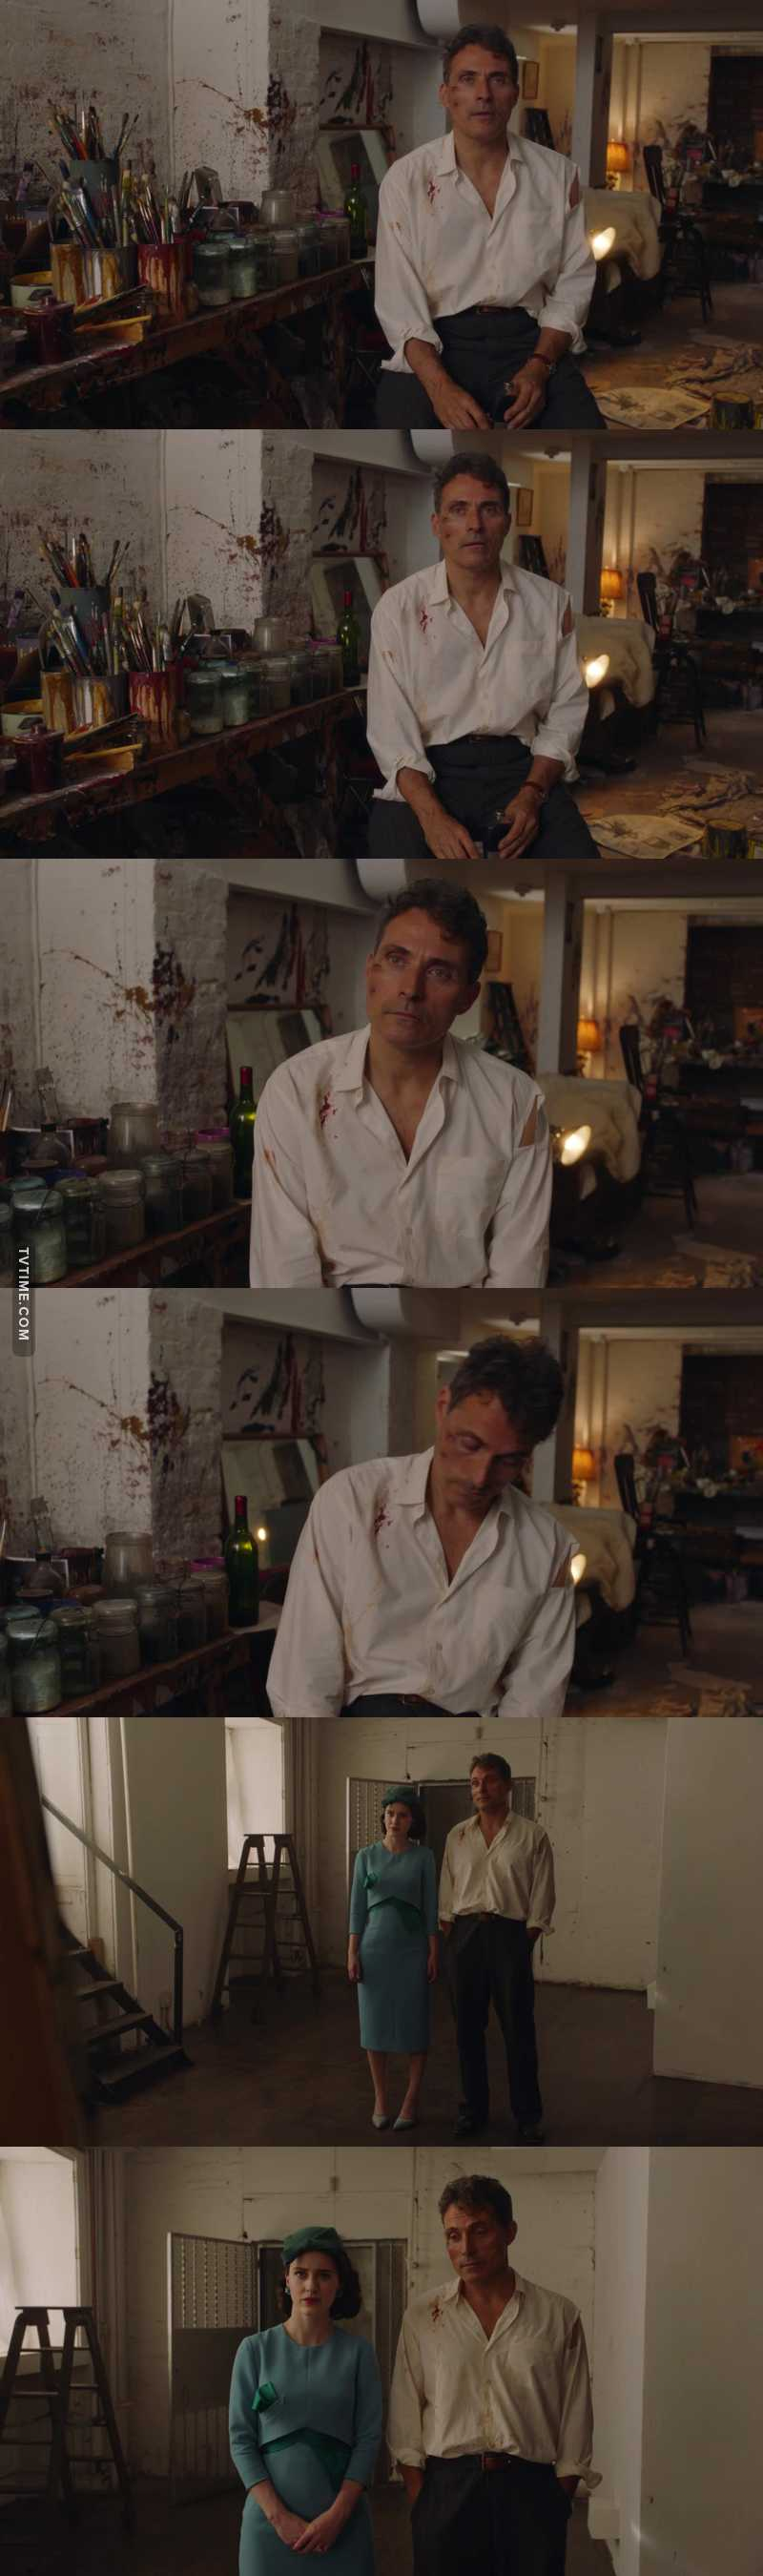 Can I vote for Rufus Sewell? Since he was absolutely PHENOMENAL!!!! Rufus Sewell is the kind of actor who steals the scene wherever he goes, he was absolute in this episode, on another level, his level.